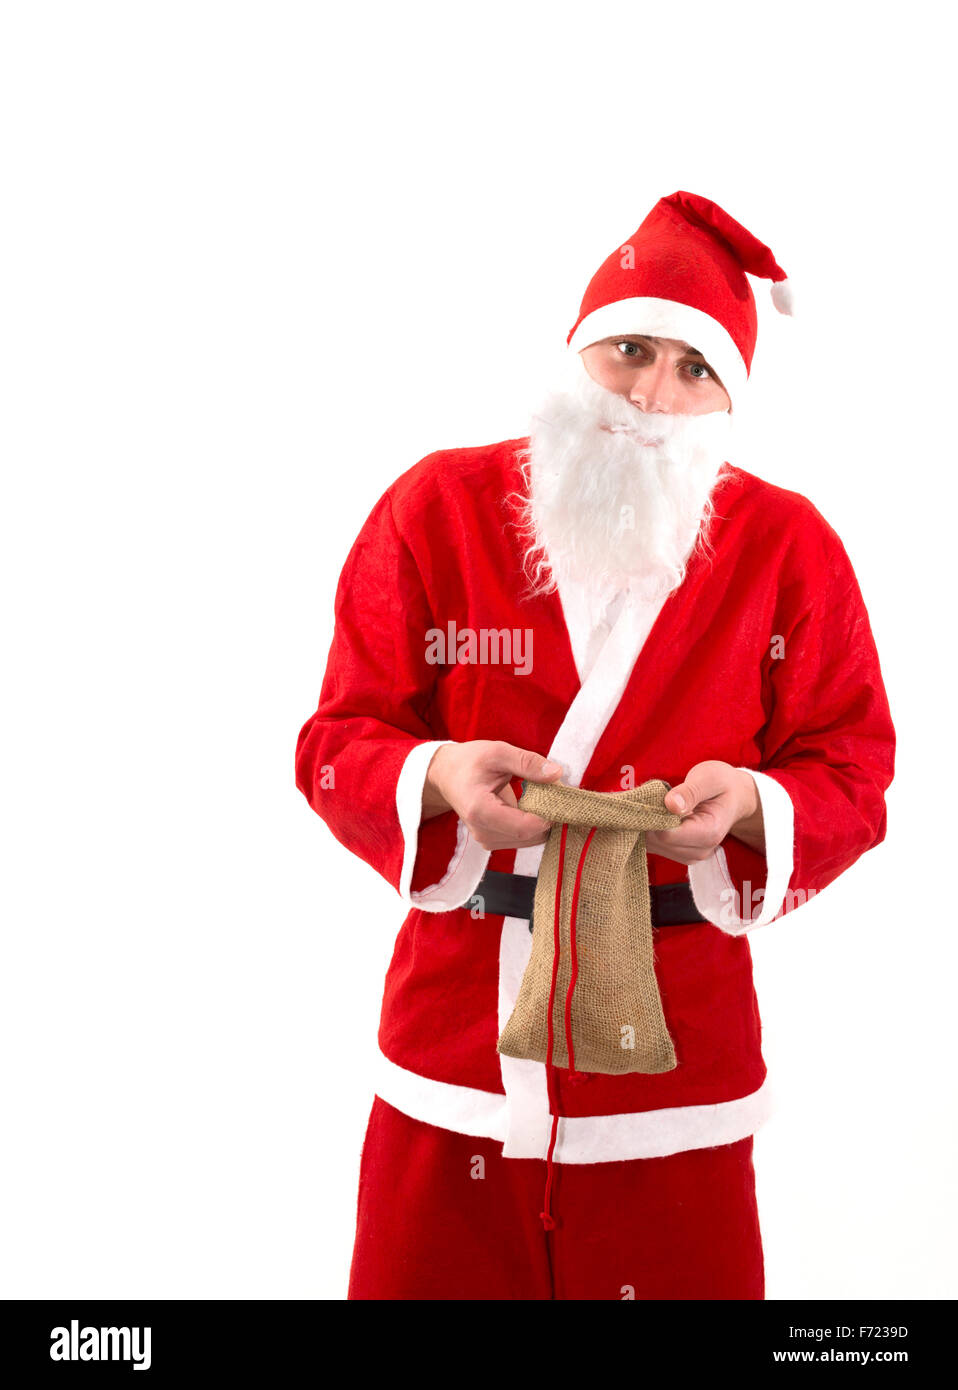 Poor Santa Claus with empty bag - Stock Image